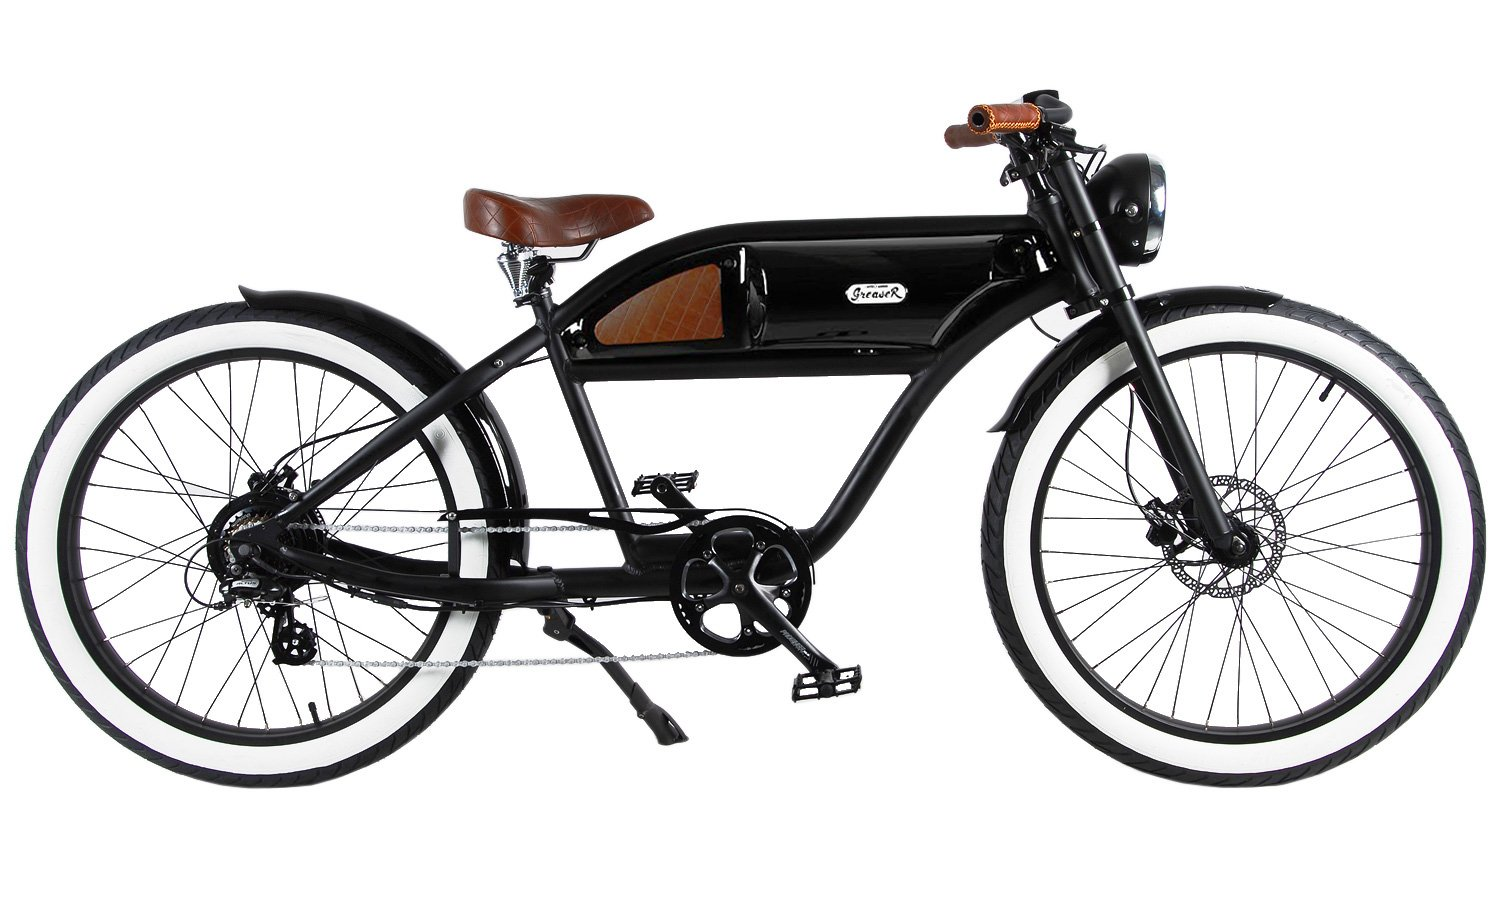 MICHAEL BLAST T4B GREASER RETRO STYLE Electric BIKE – 26 Wheels, Bafang 350W Brushless Electric Motor, 7-speed, 36V13Ah, Li-Ion Battery, Extended Range